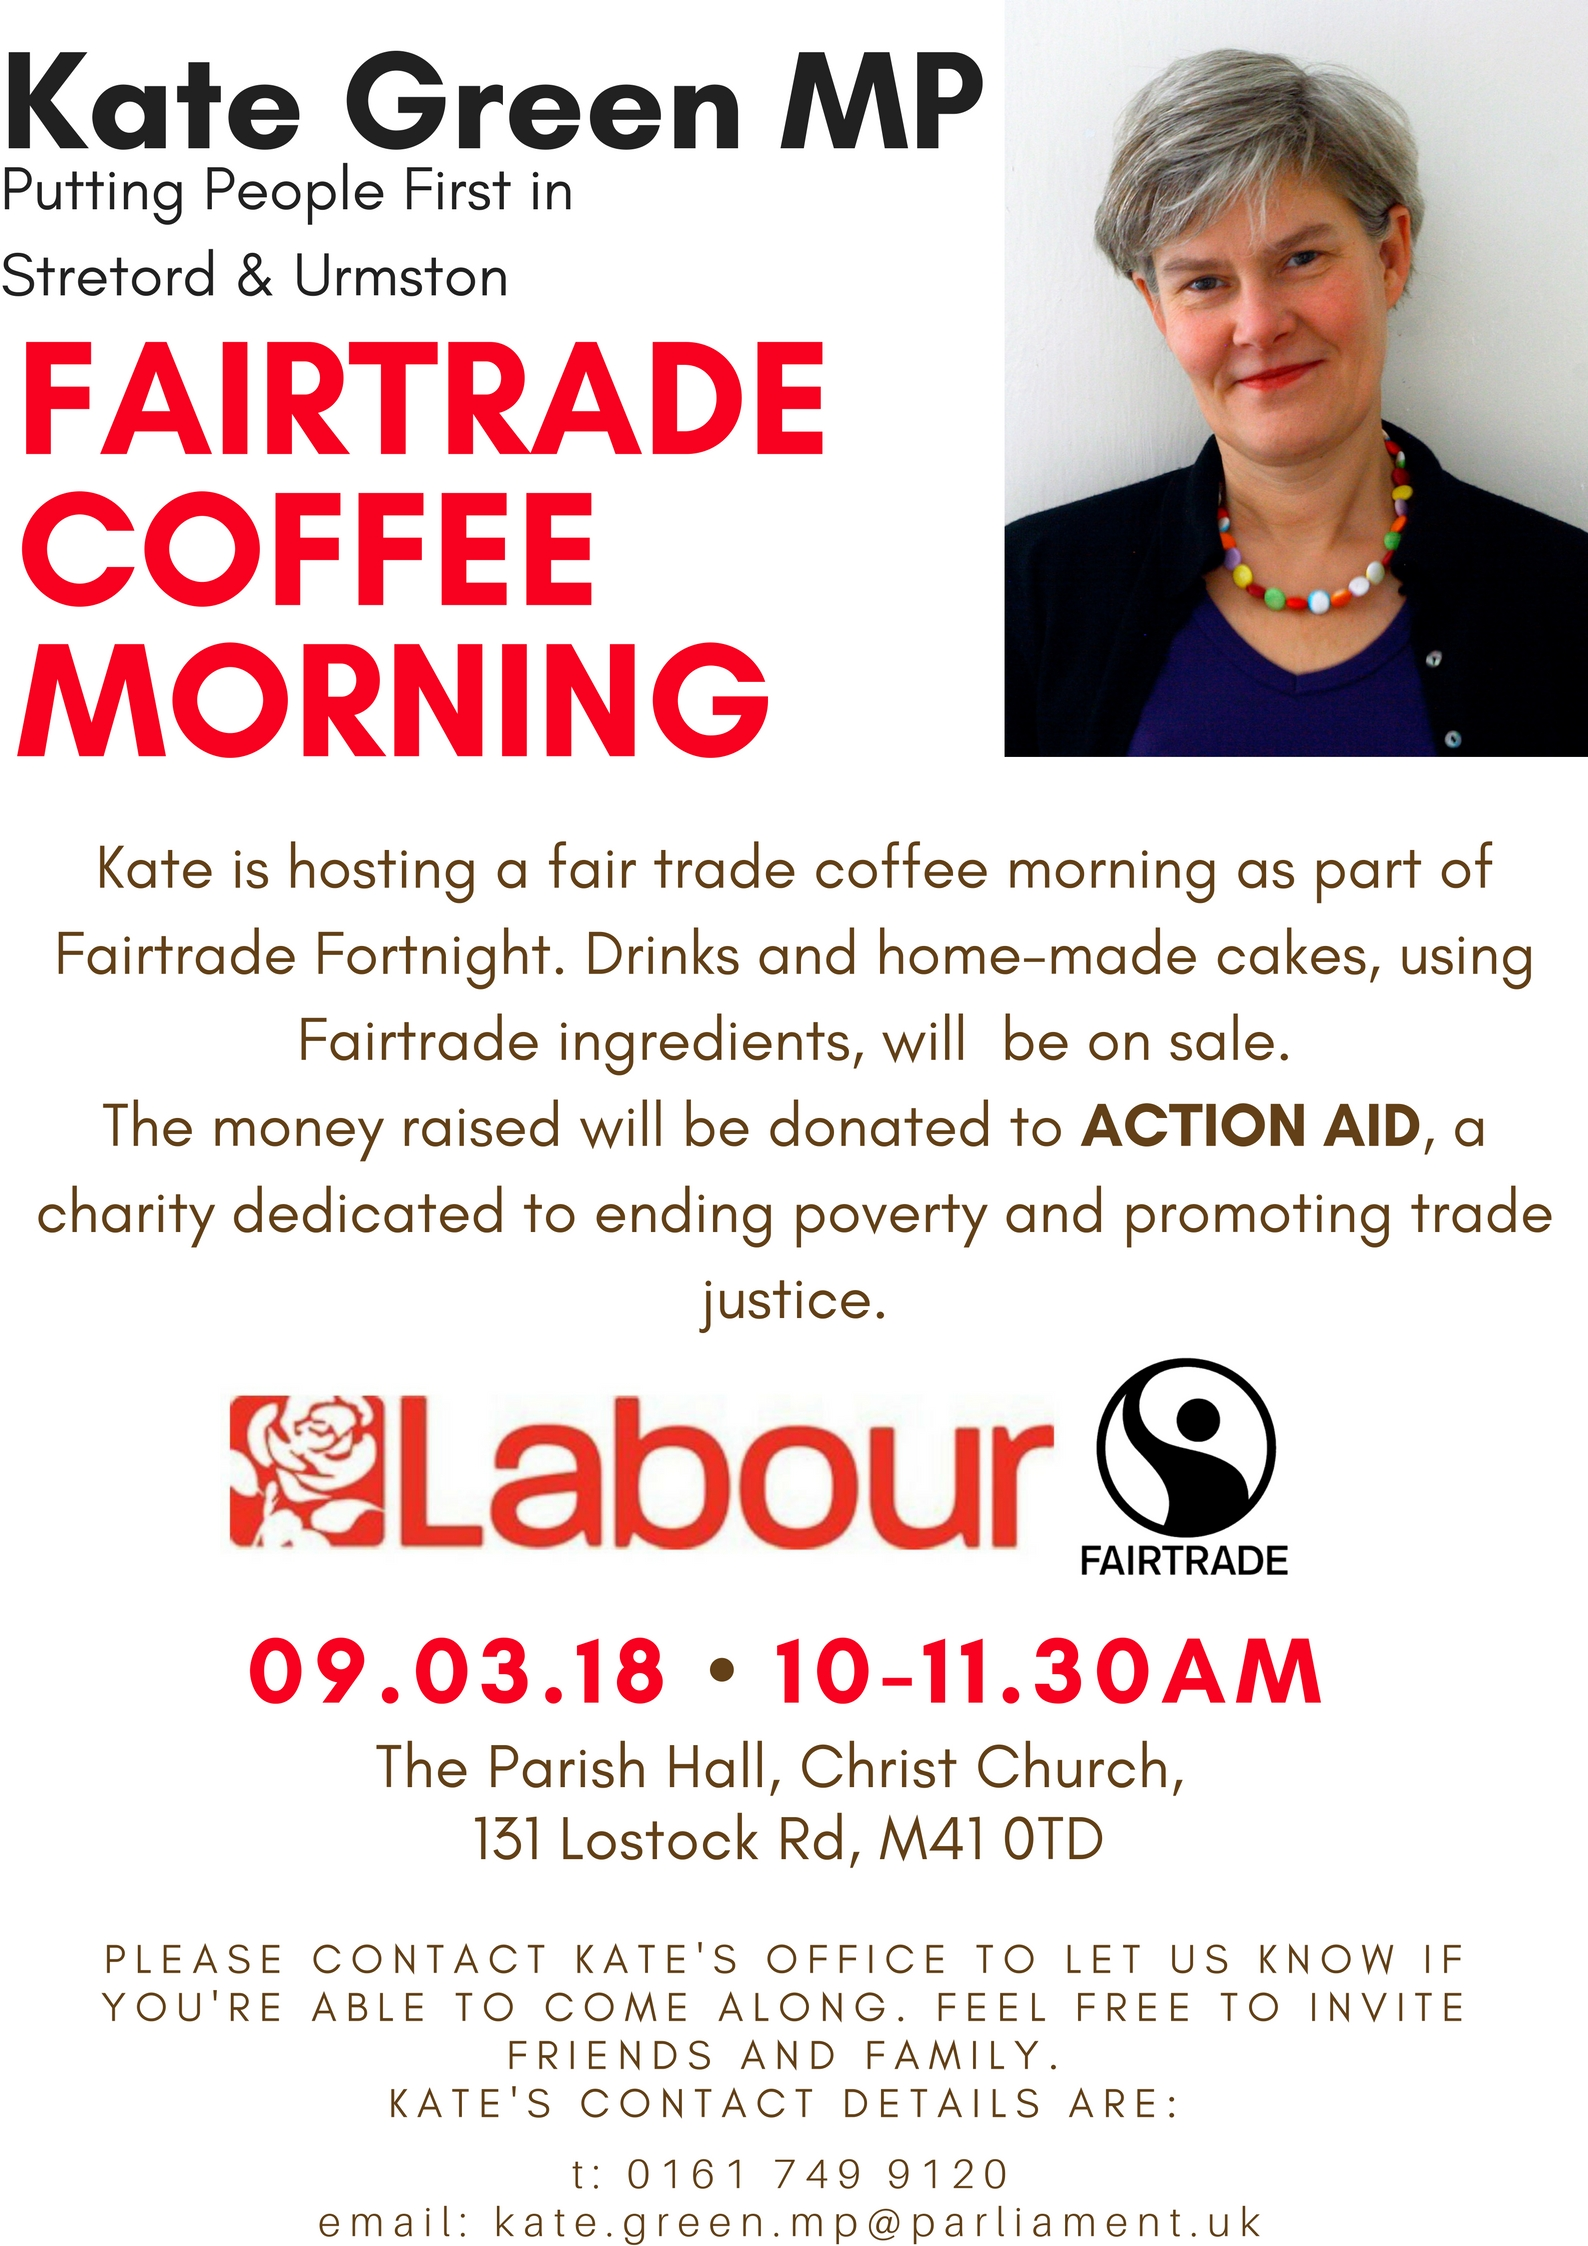 Fairtrade_coffee_morning_new_2018.jpg